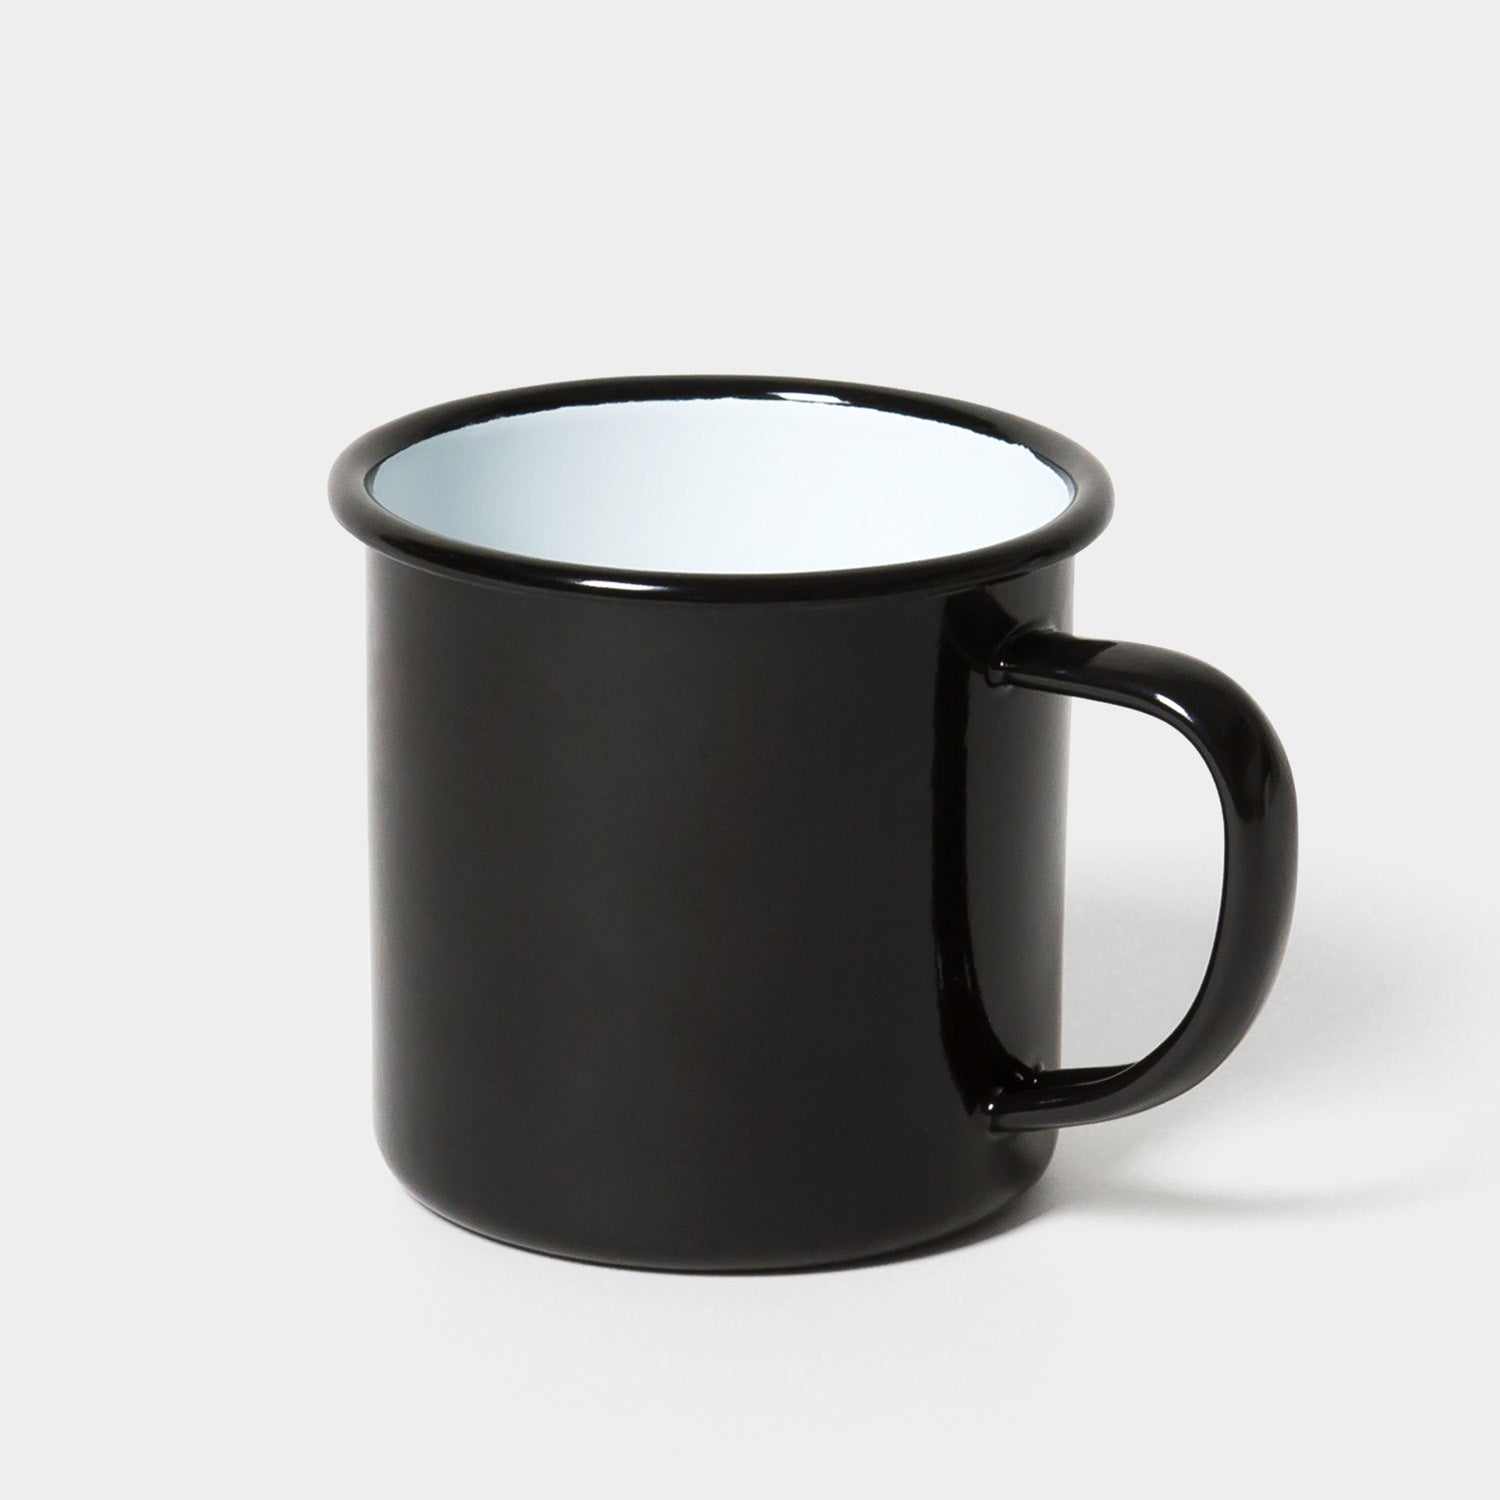 Falcon Original Enamel Mug - Coal Black